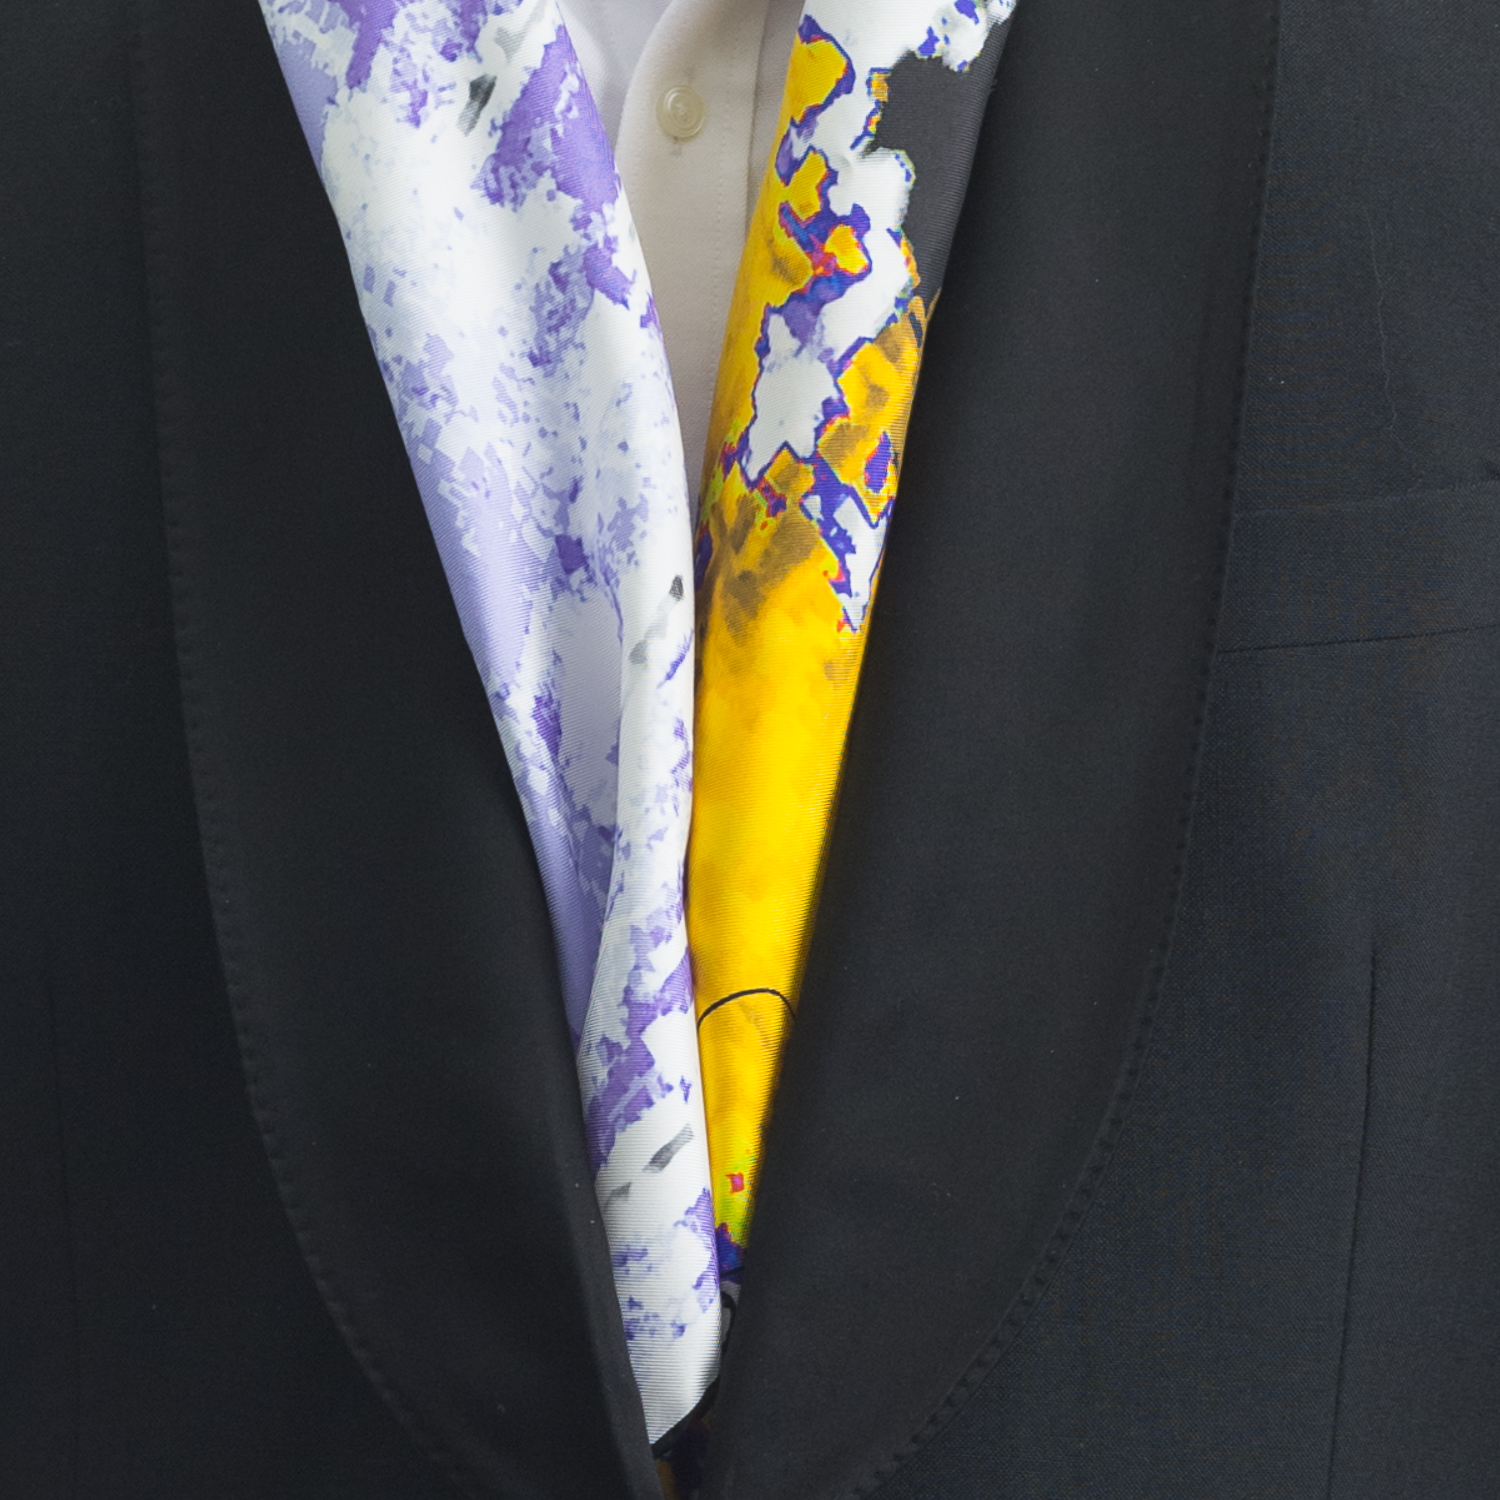 Rosemary Goodenough Man 'Planting in Drifts VII' Scarf Detail.jpg